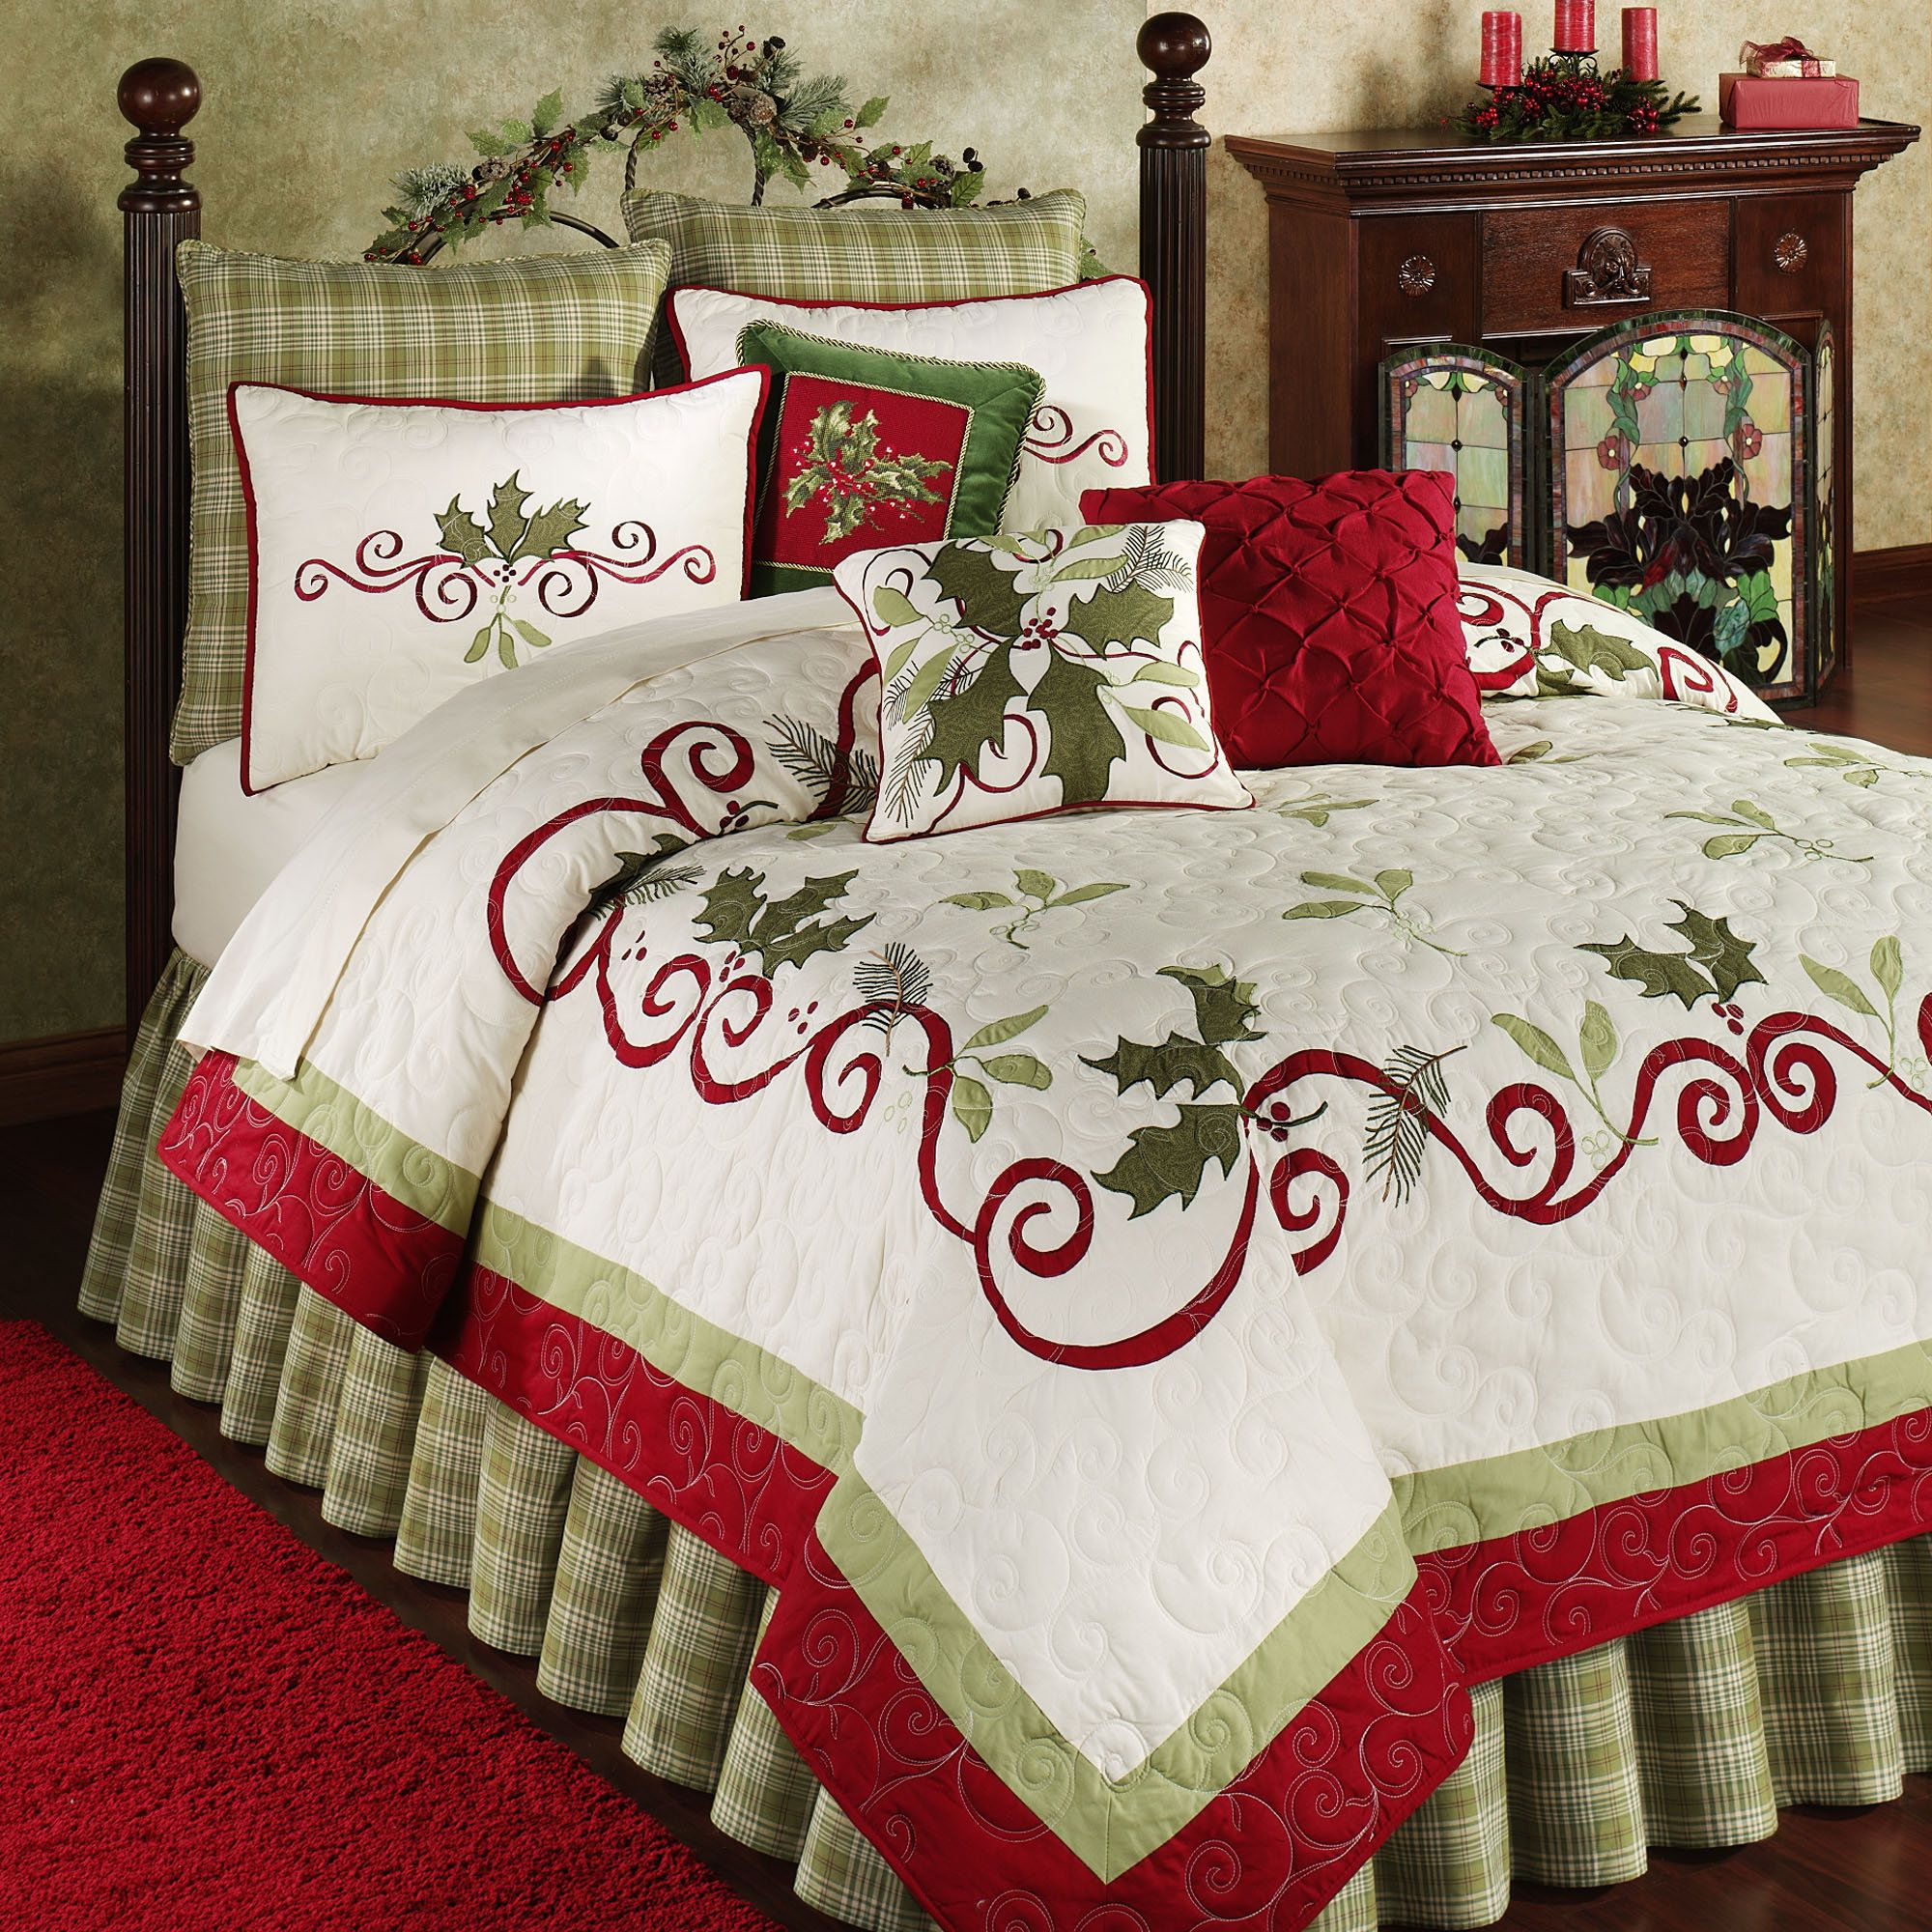 christmas shabby chic bedding: 13 Fascinating Christmas Bedding ...